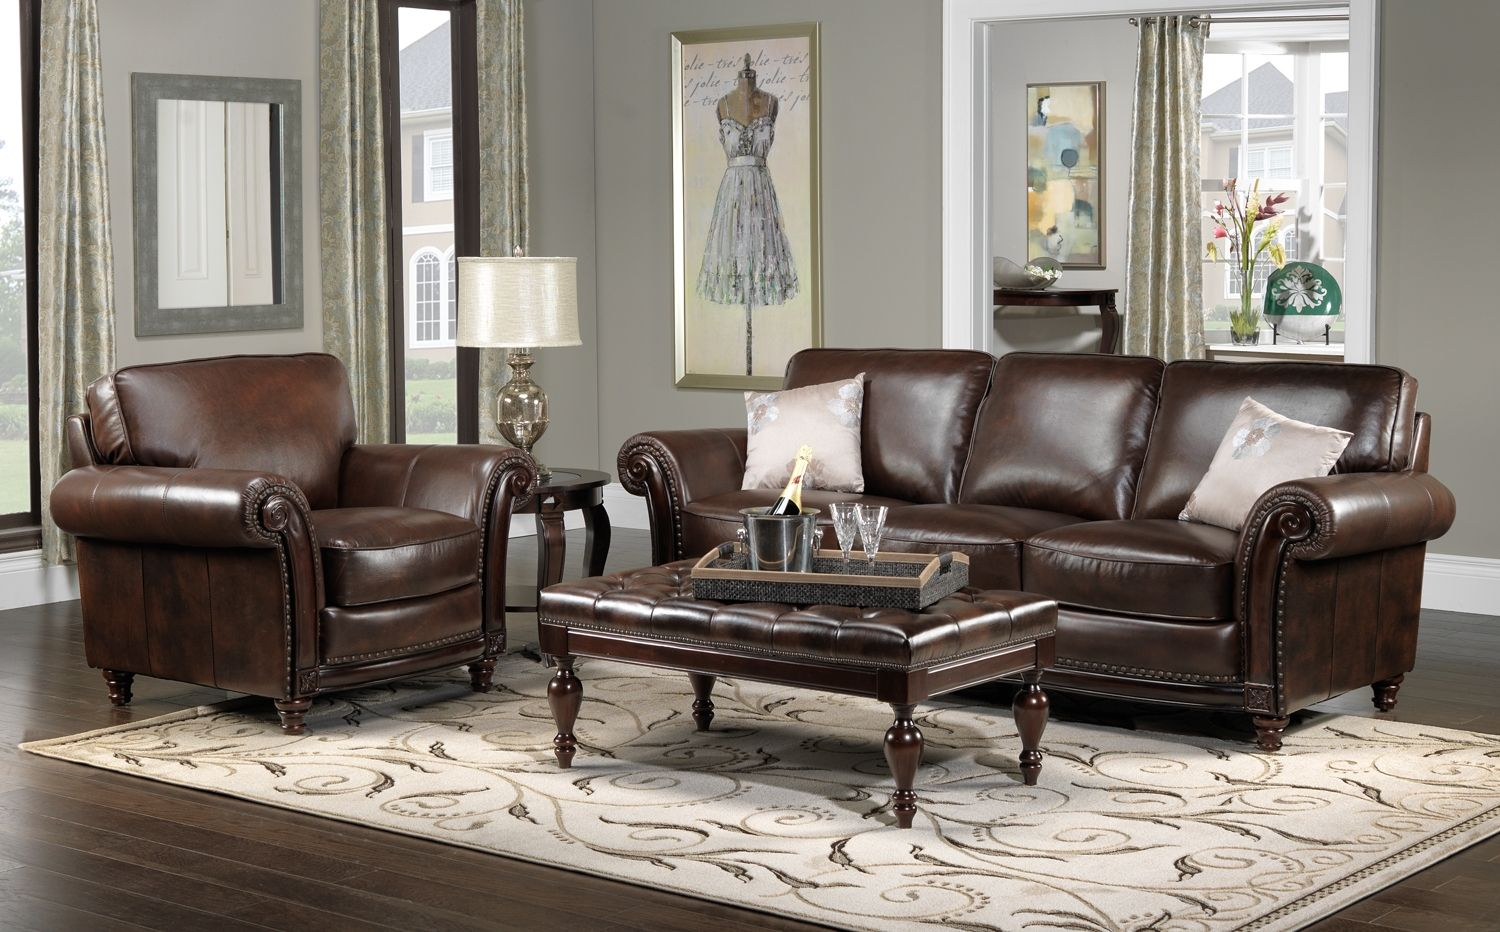 Leather Furniture Decorating Ideas Dream House Decor Ideas For Brown Leather Furniture Gngkxz